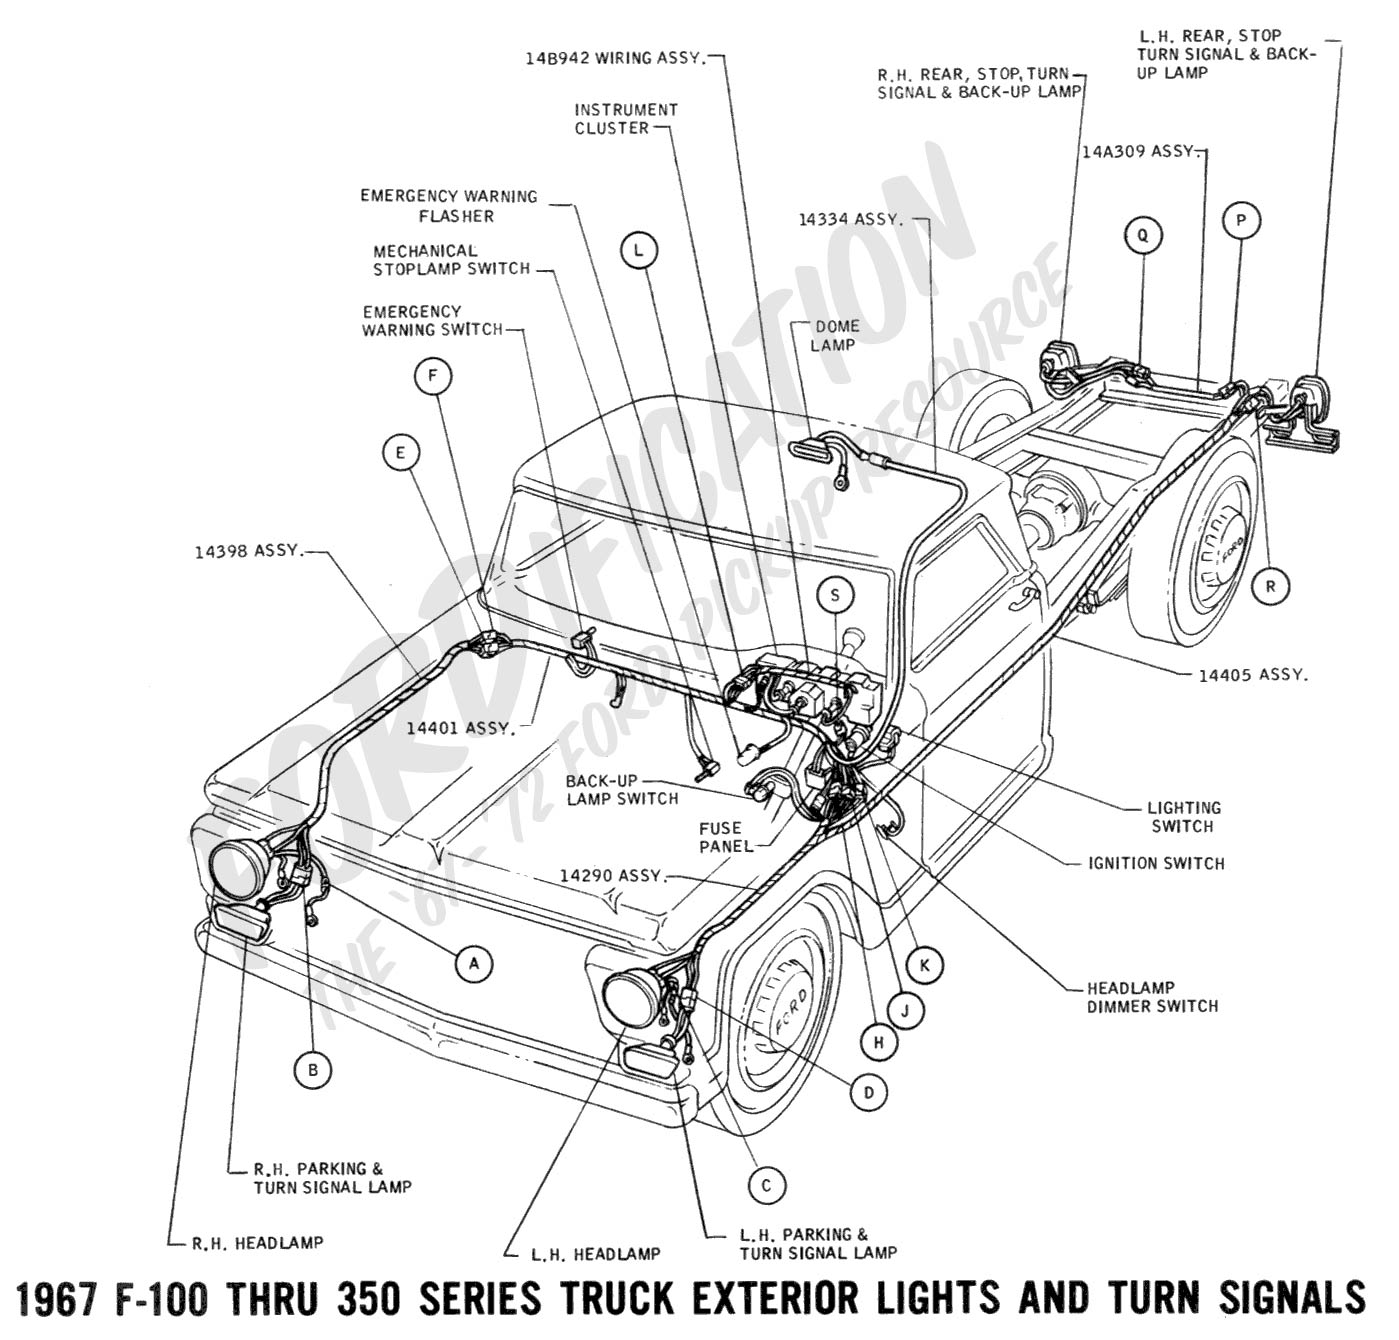 wiring 1967extlights01 ford truck technical drawings and schematics section h wiring 2013 Ford F350 Wiring Diagram at reclaimingppi.co